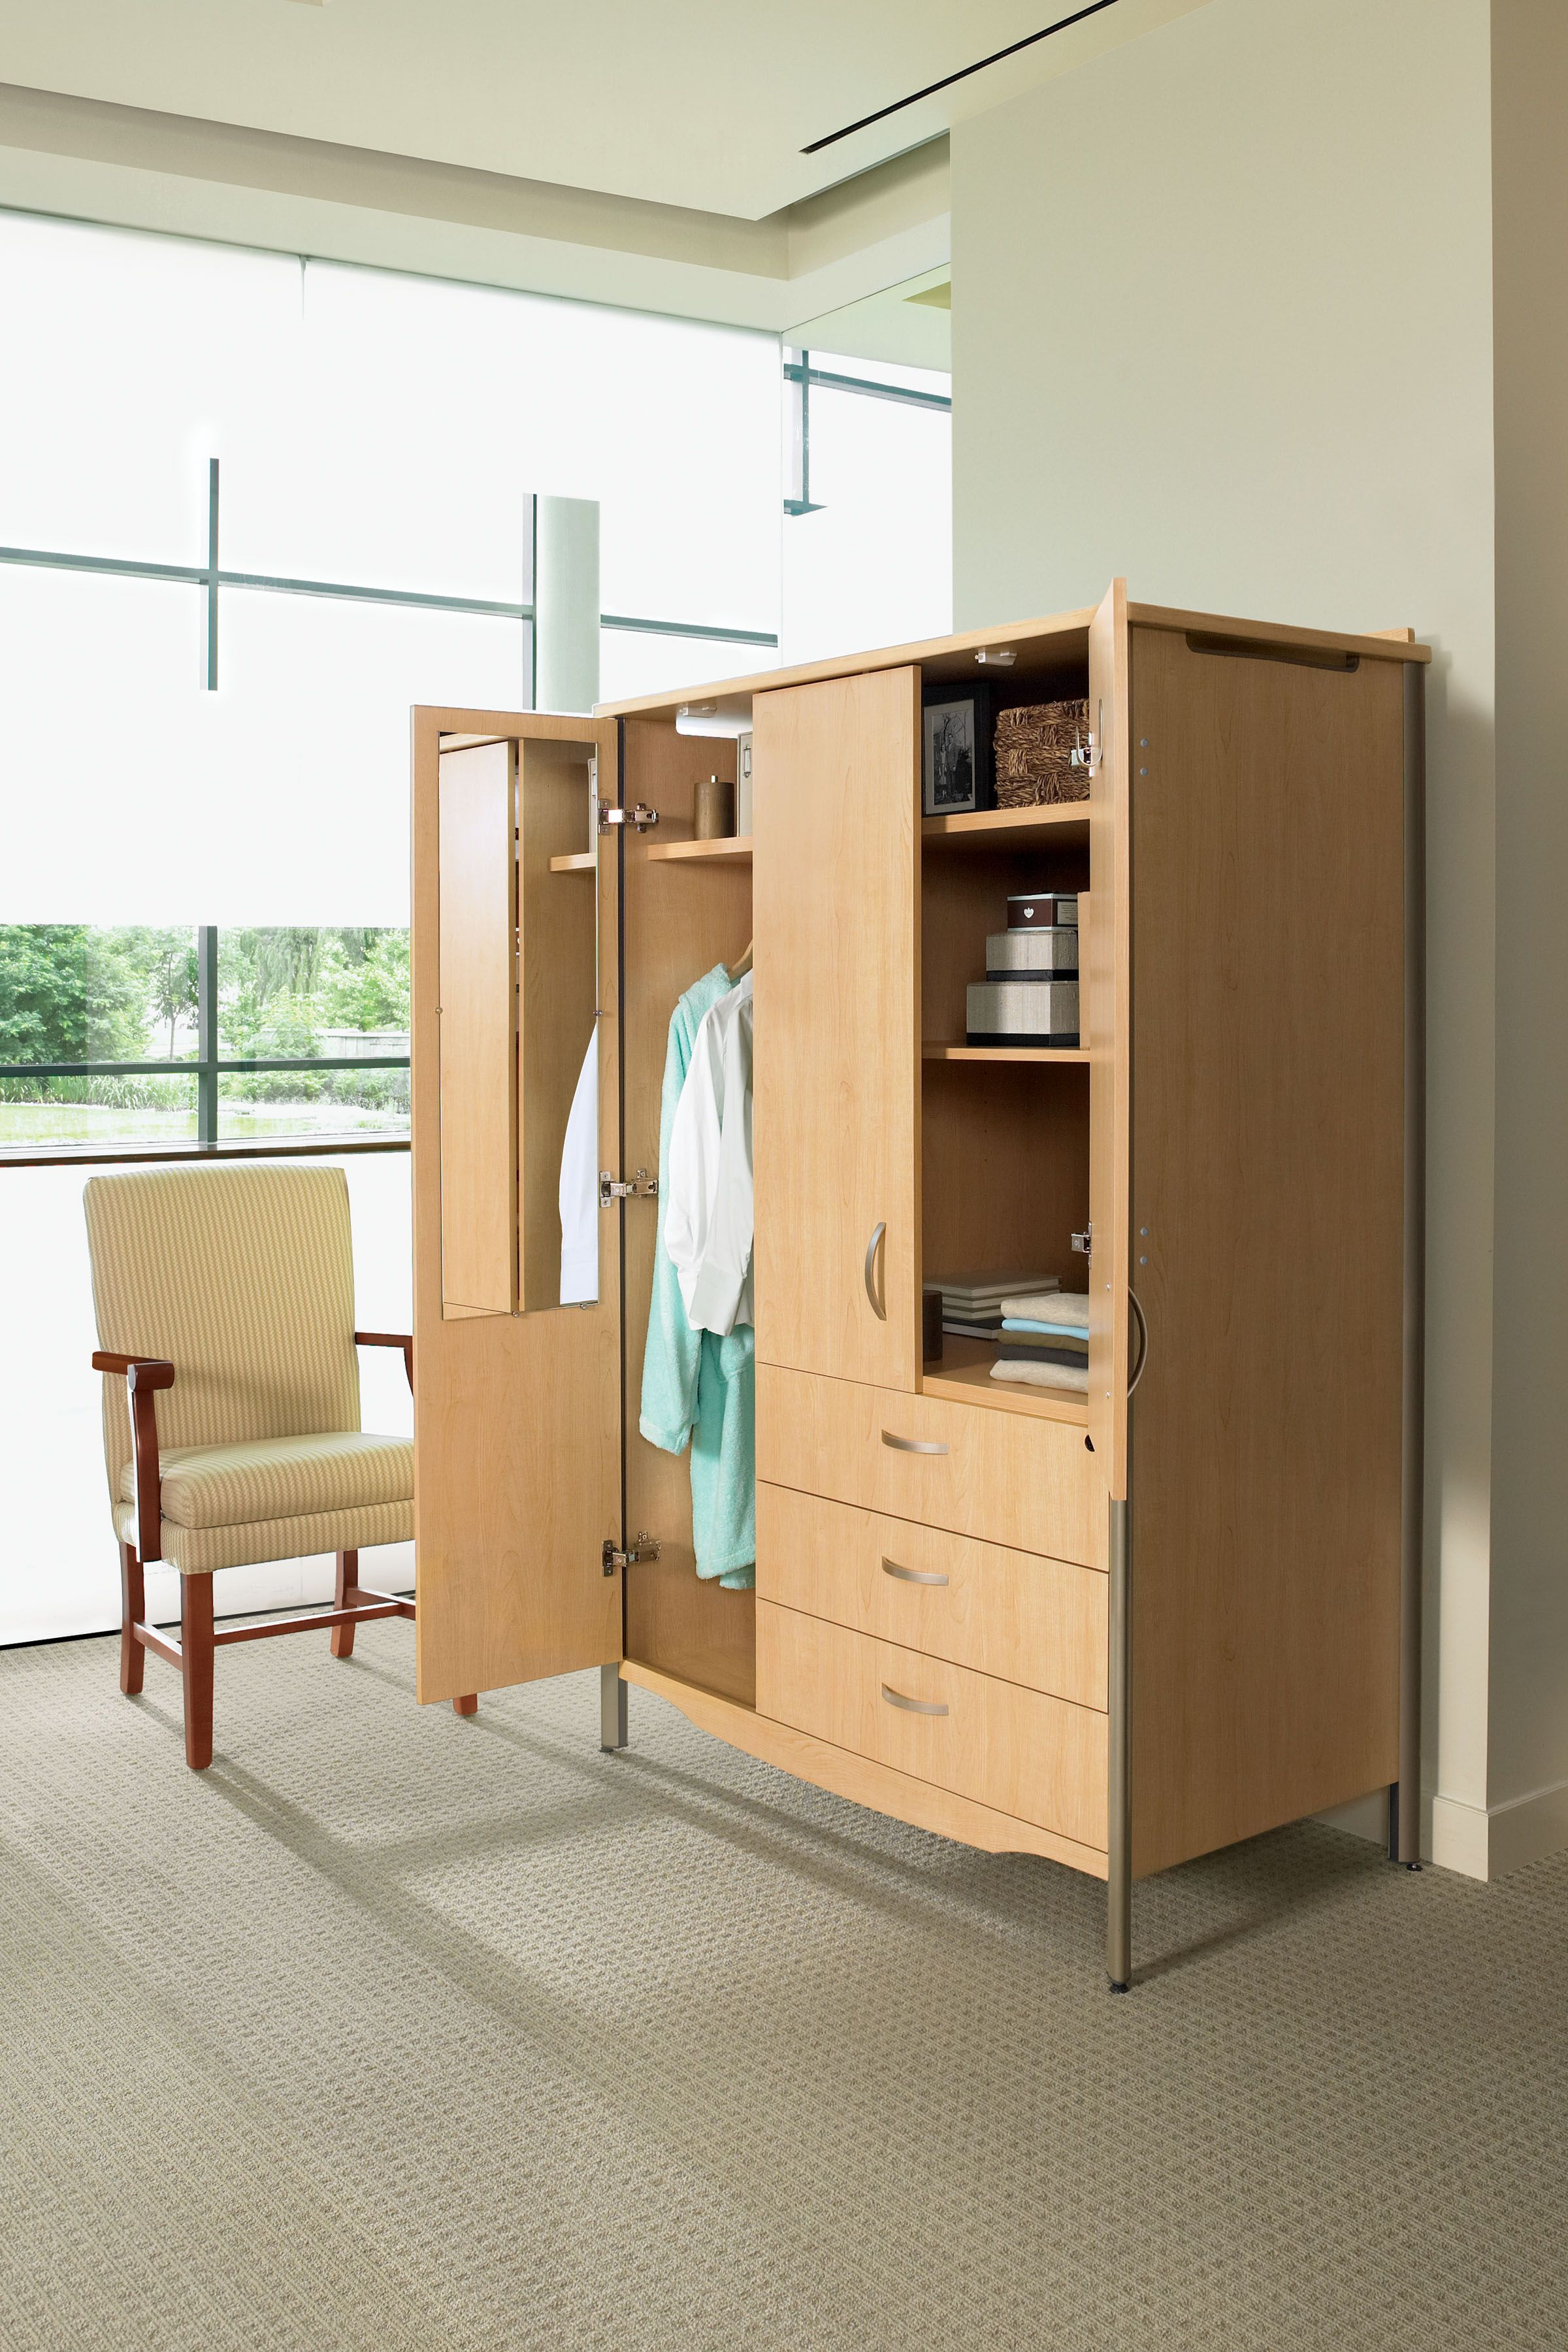 Patient Room Design: GLOBALcare Sonoma Wardrobe And Majesty Chair